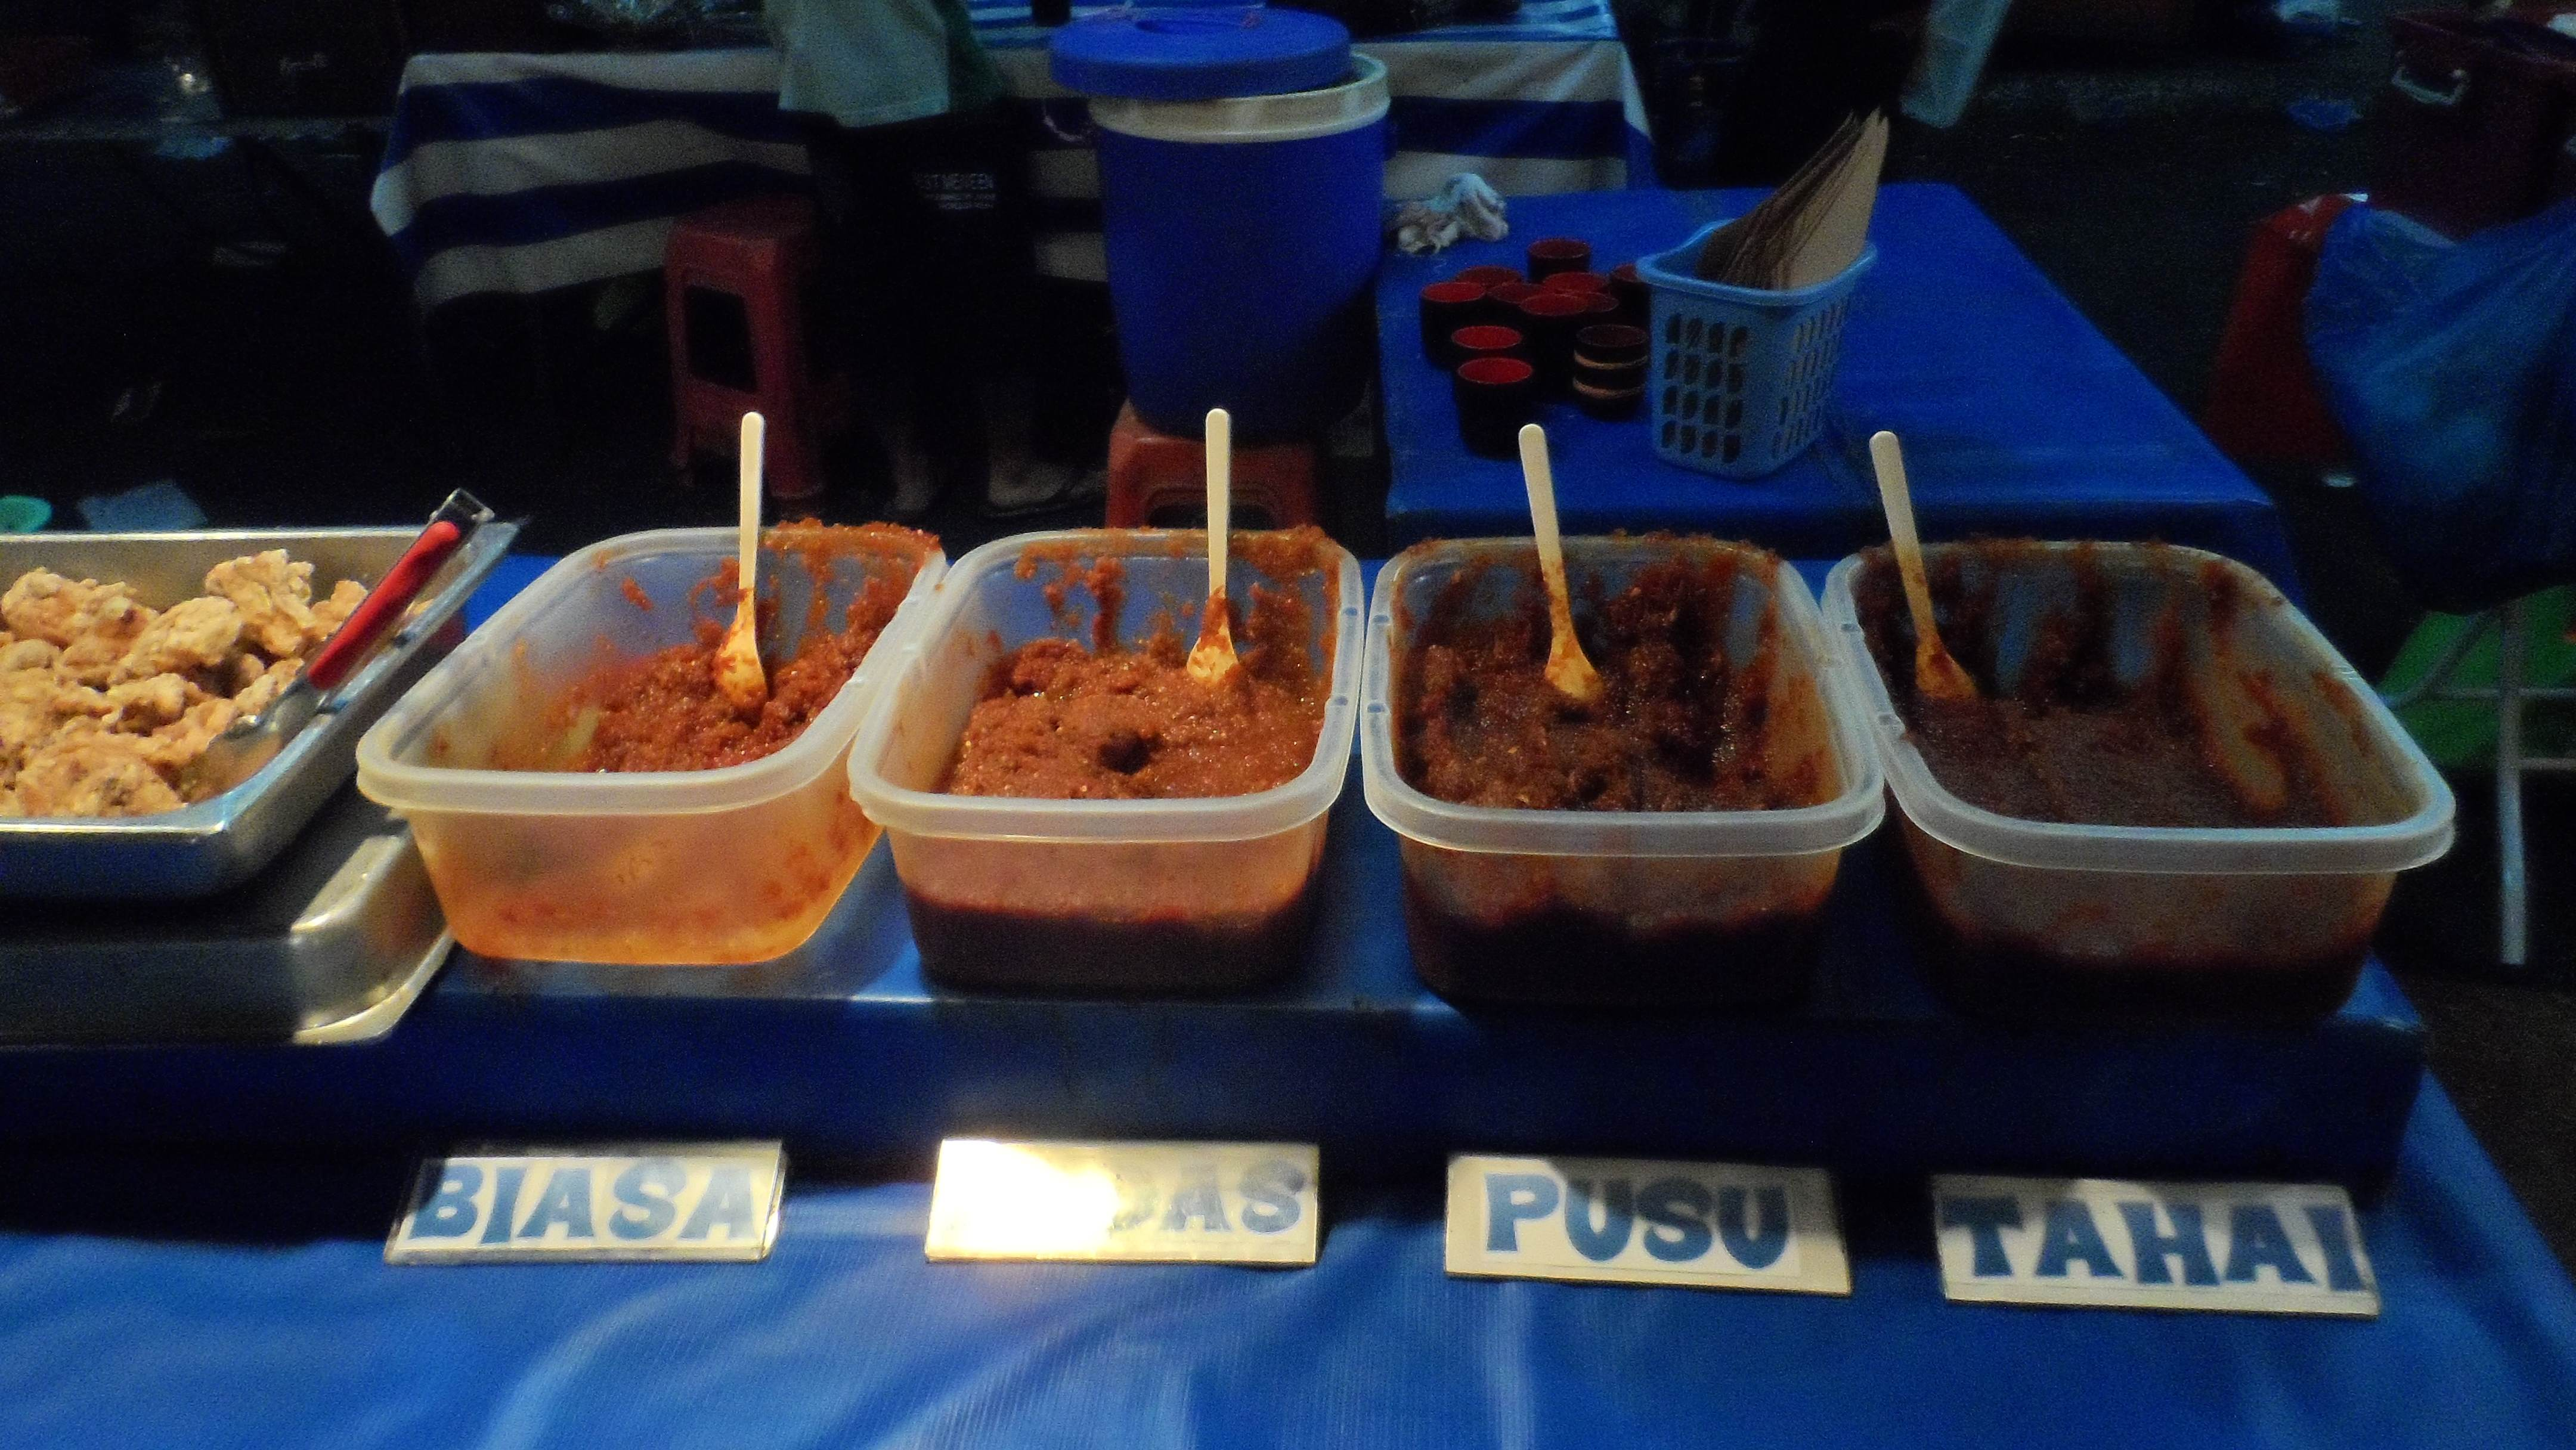 Staple food, Nasi Lemak, which you will also see in Malaysian food ...